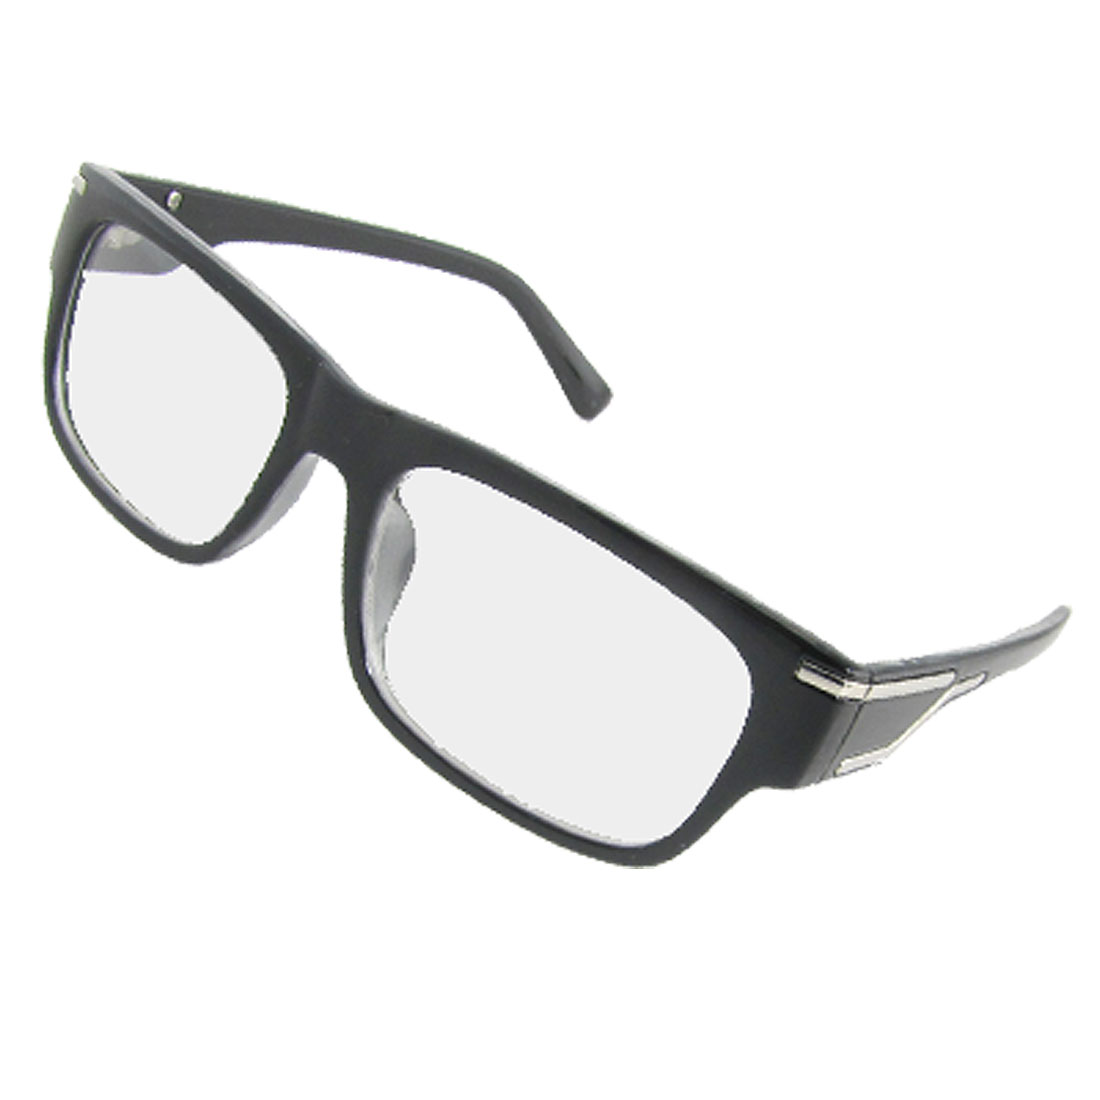 Black Rectangle Multi-coated Lens Eyeglasses Plain Glasses Eyewear